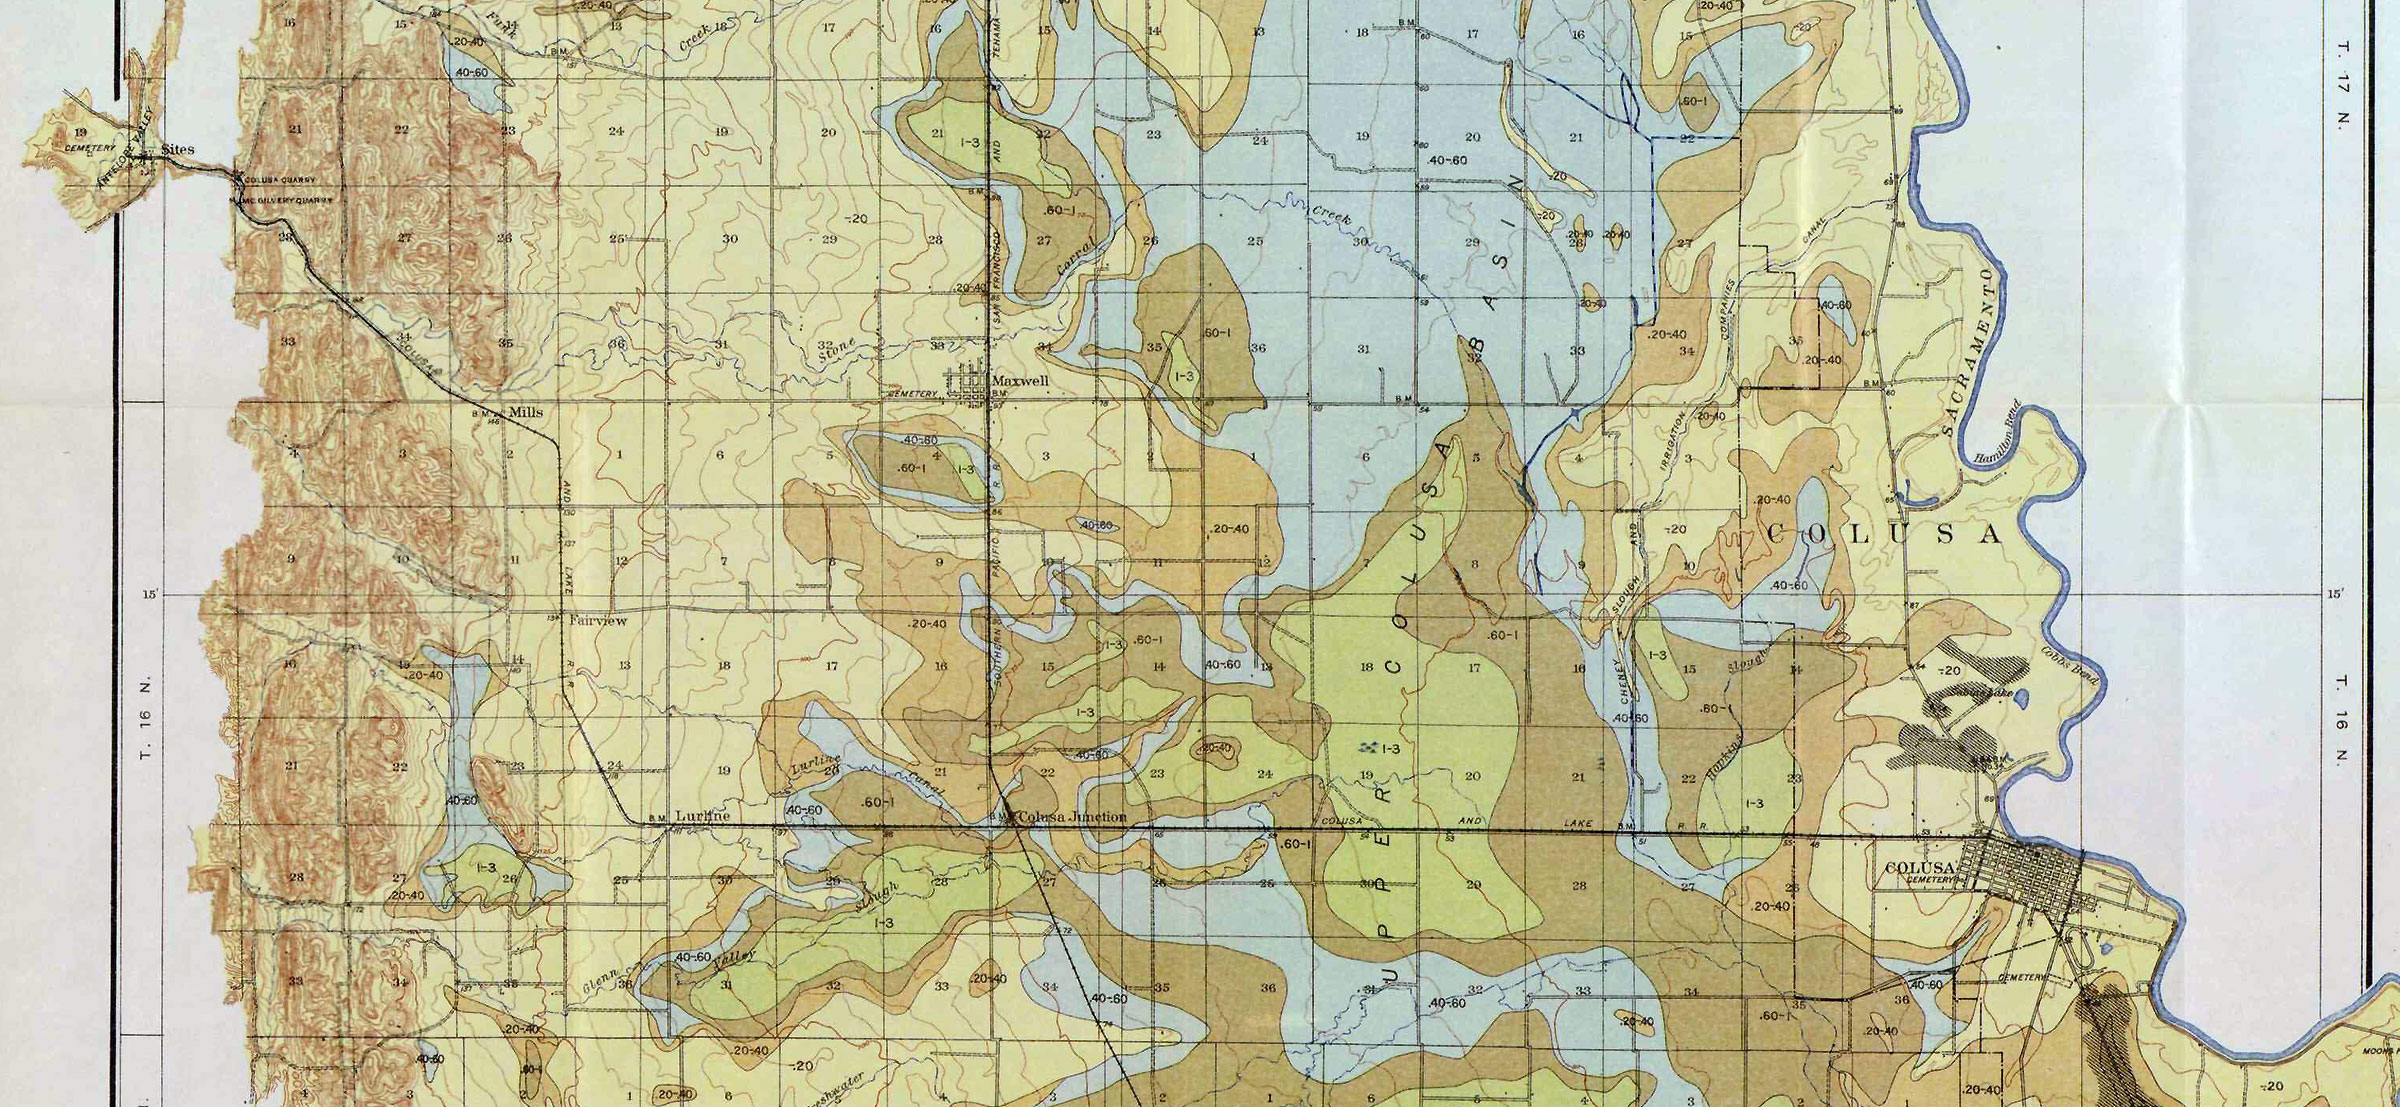 Historical Railroad Maps & Timetables, Page 1: Wx4 Collection